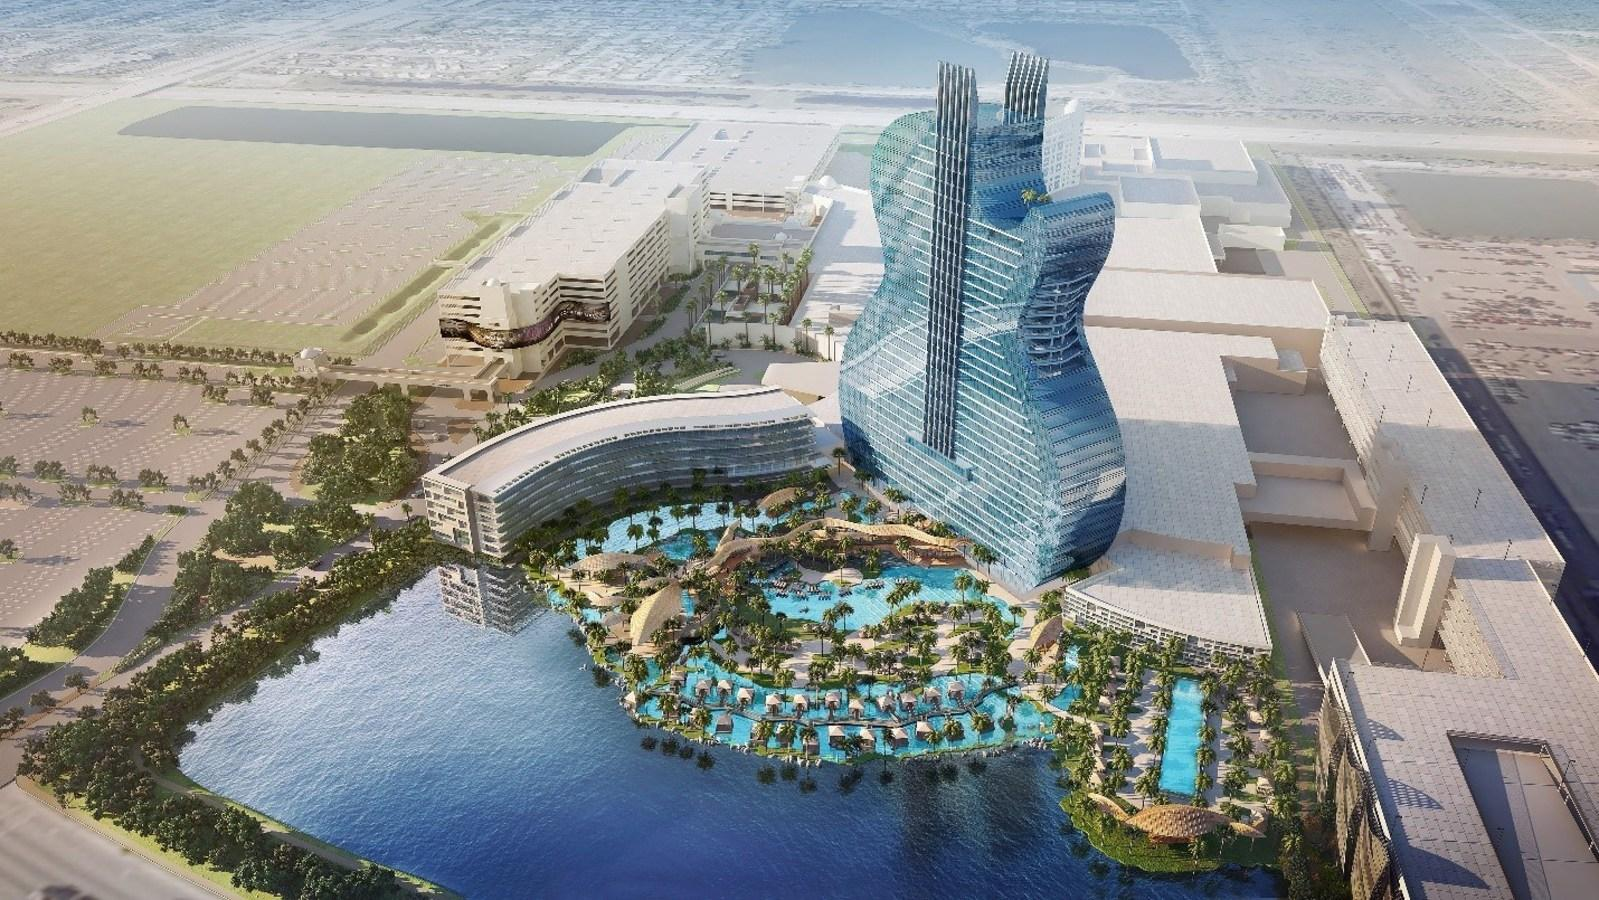 The resort will feature a 450ft high tower shaped like back-to-back guitars / Hard Rock International